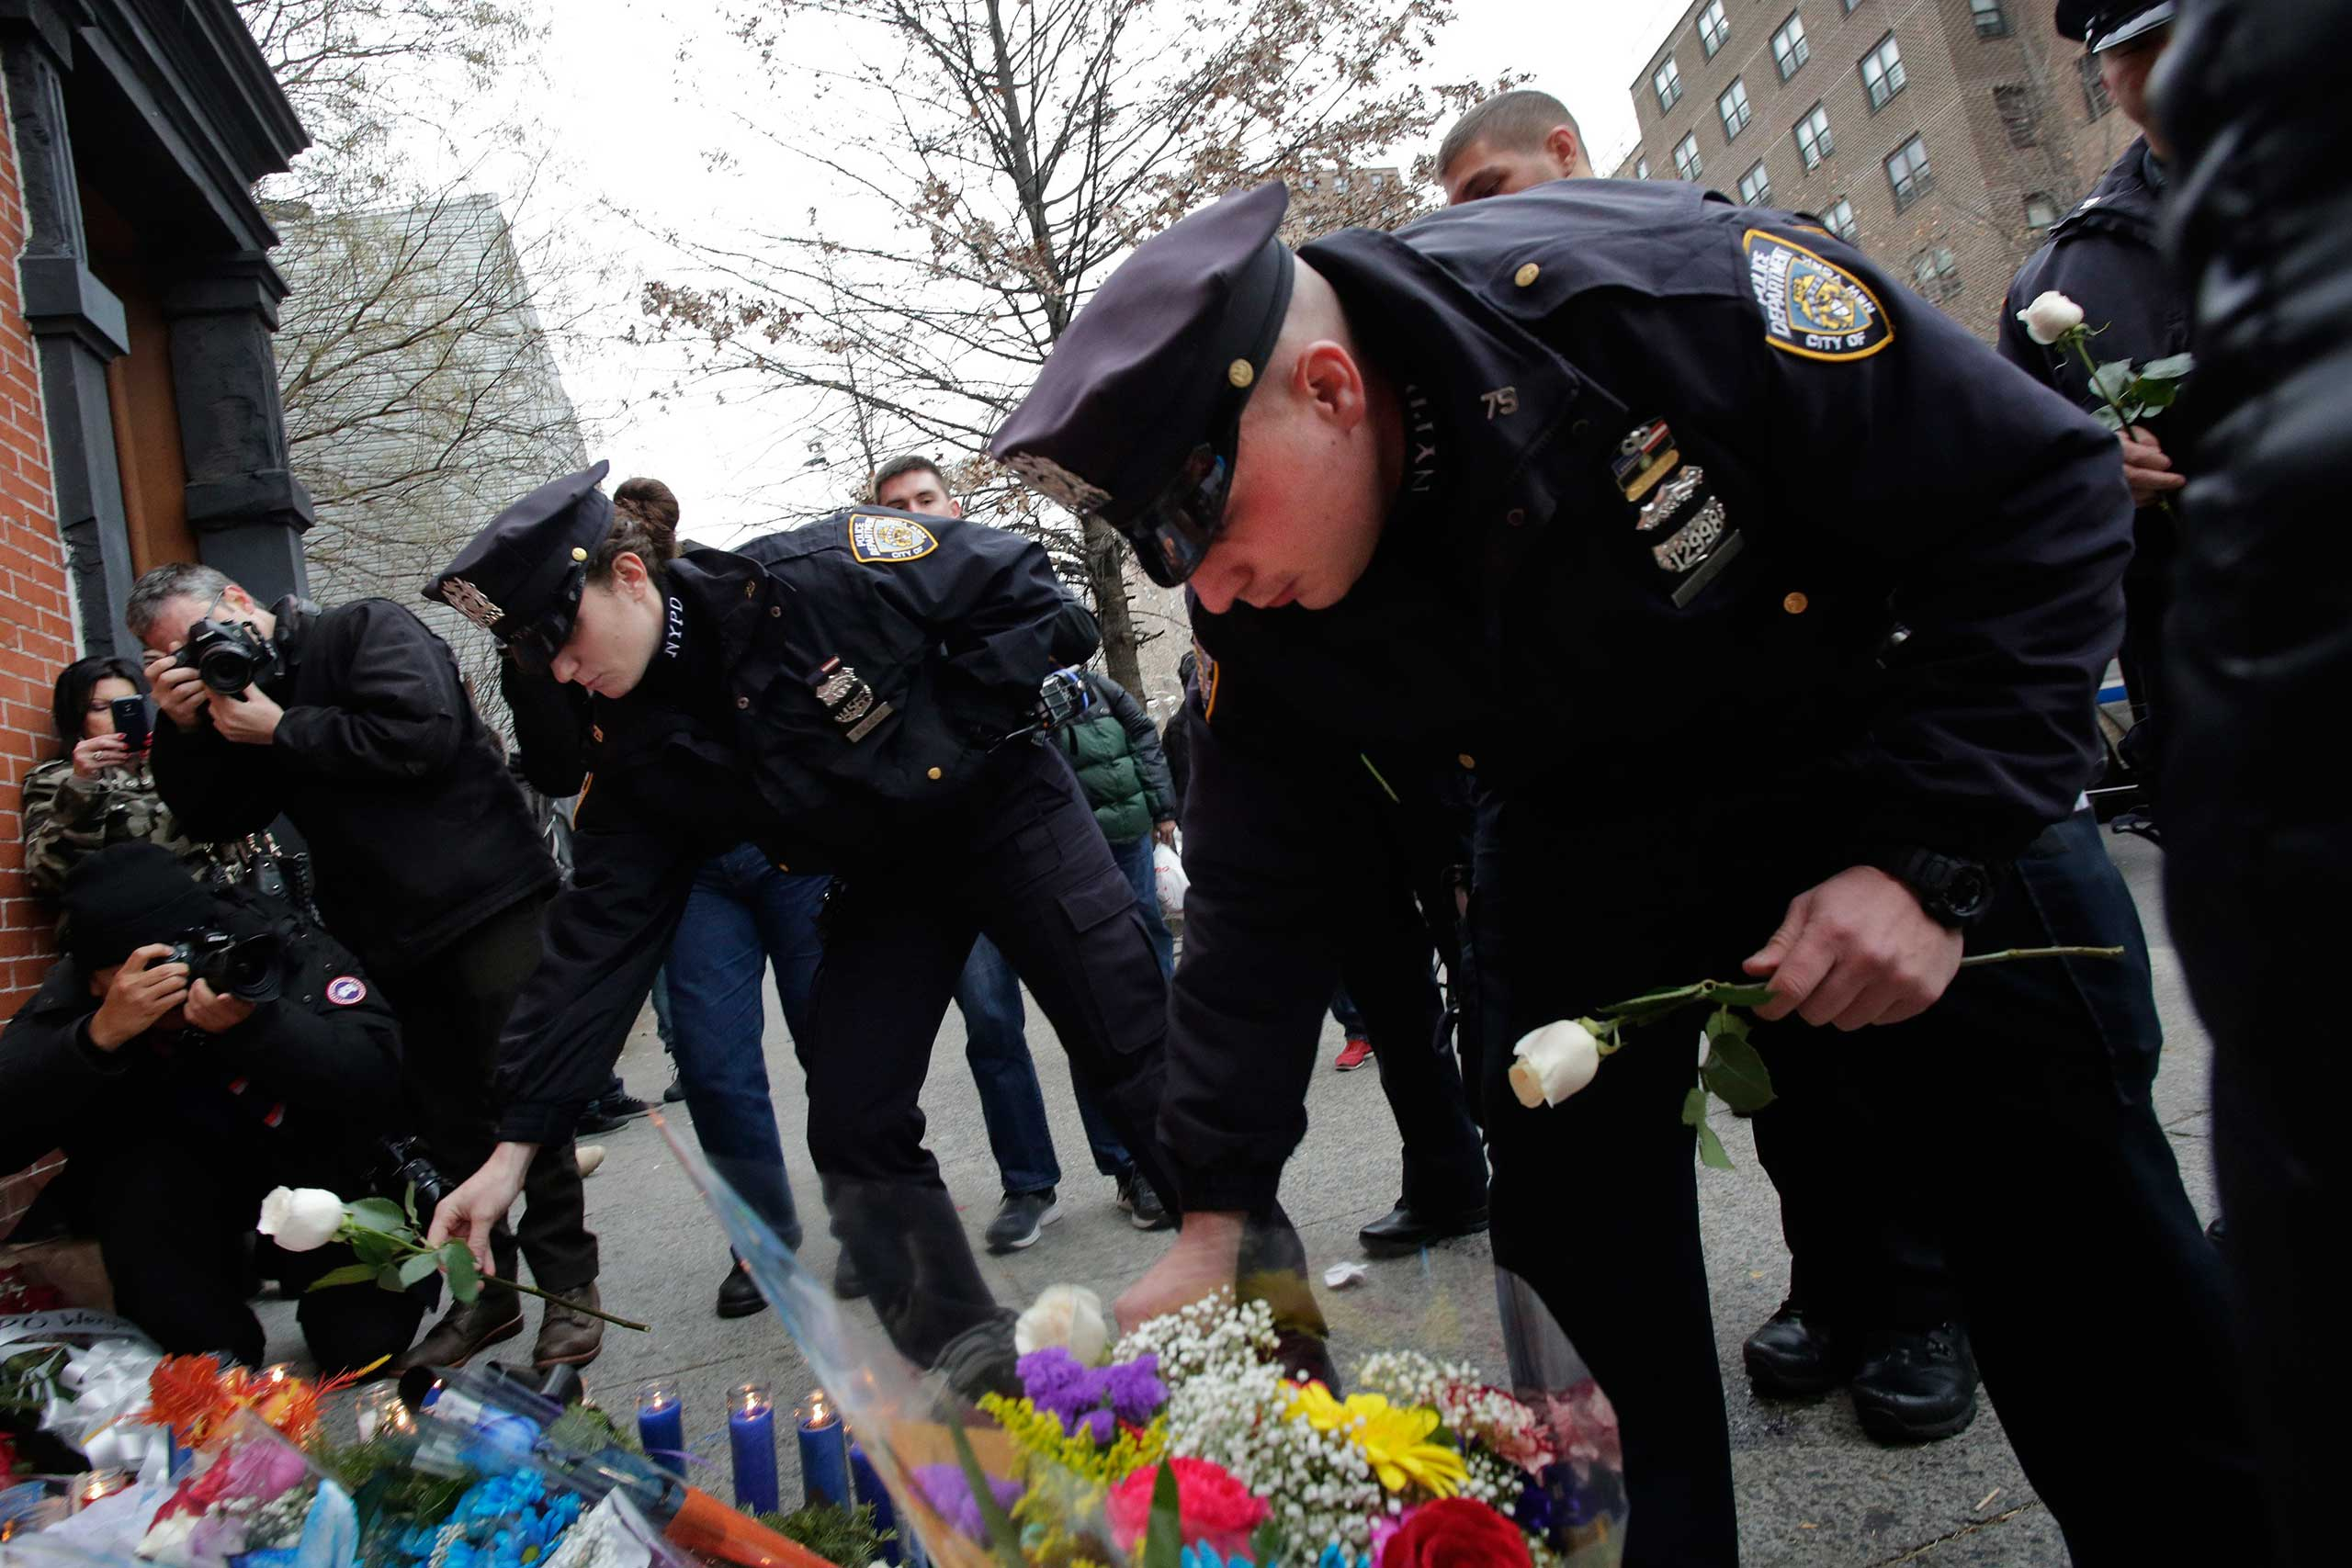 New York City police officer Darren Cox, right, accompanied by fellow officers, leaves flowers at a memorial in the Brooklyn borough of New York City on Dec. 21, 2014.